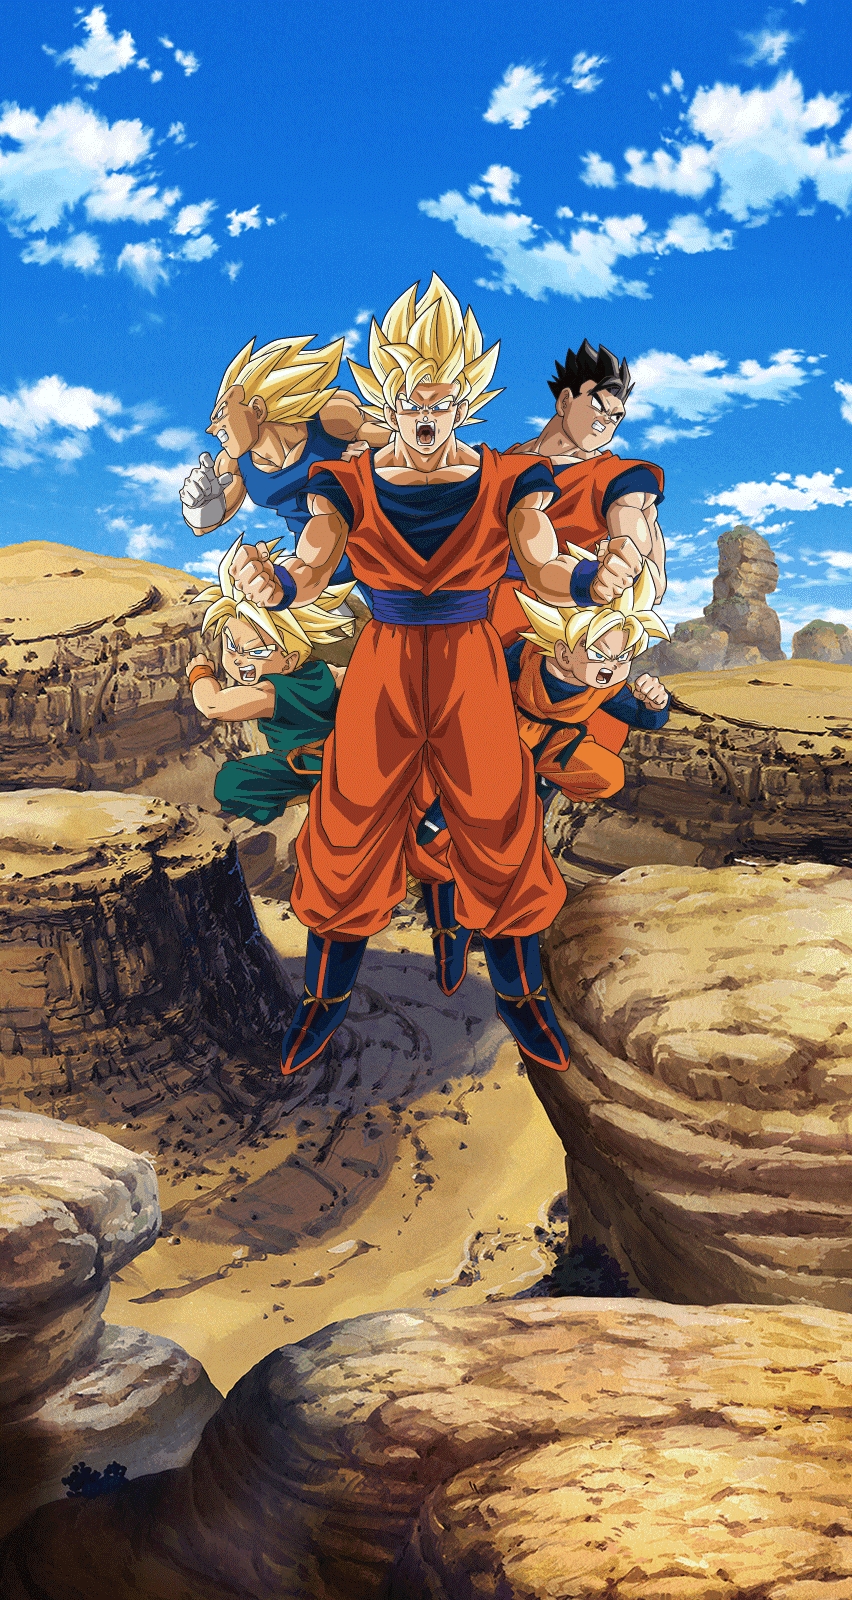 Wallpapers Dragon Ball Z Dokkan Battle Wikia Fandom